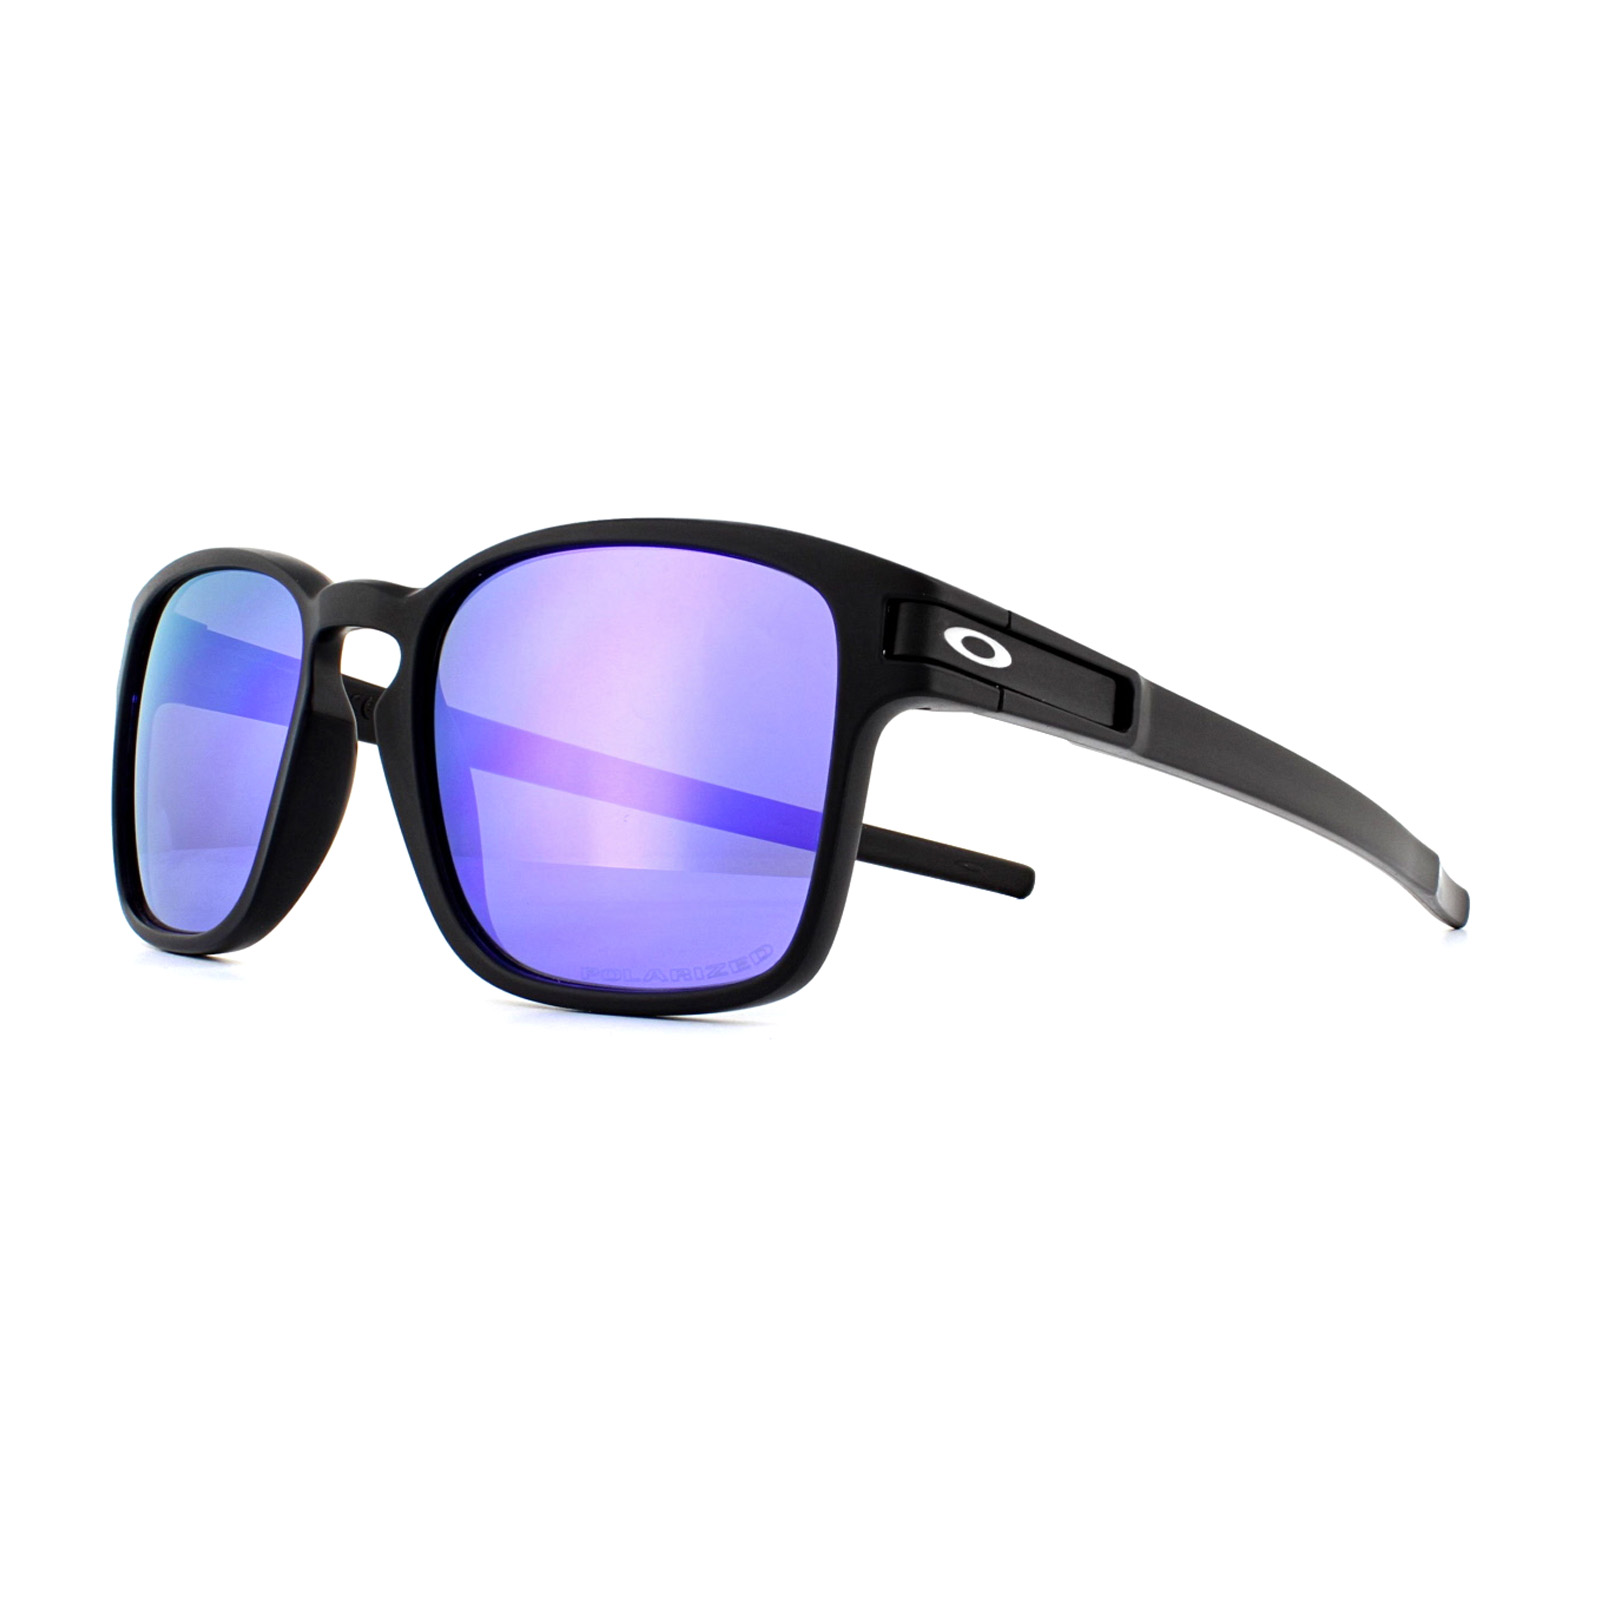 f9a714df81 Sentinel Oakley Sunglasses Latch Square OO9353-04 Black Violet Iridium  Polarized